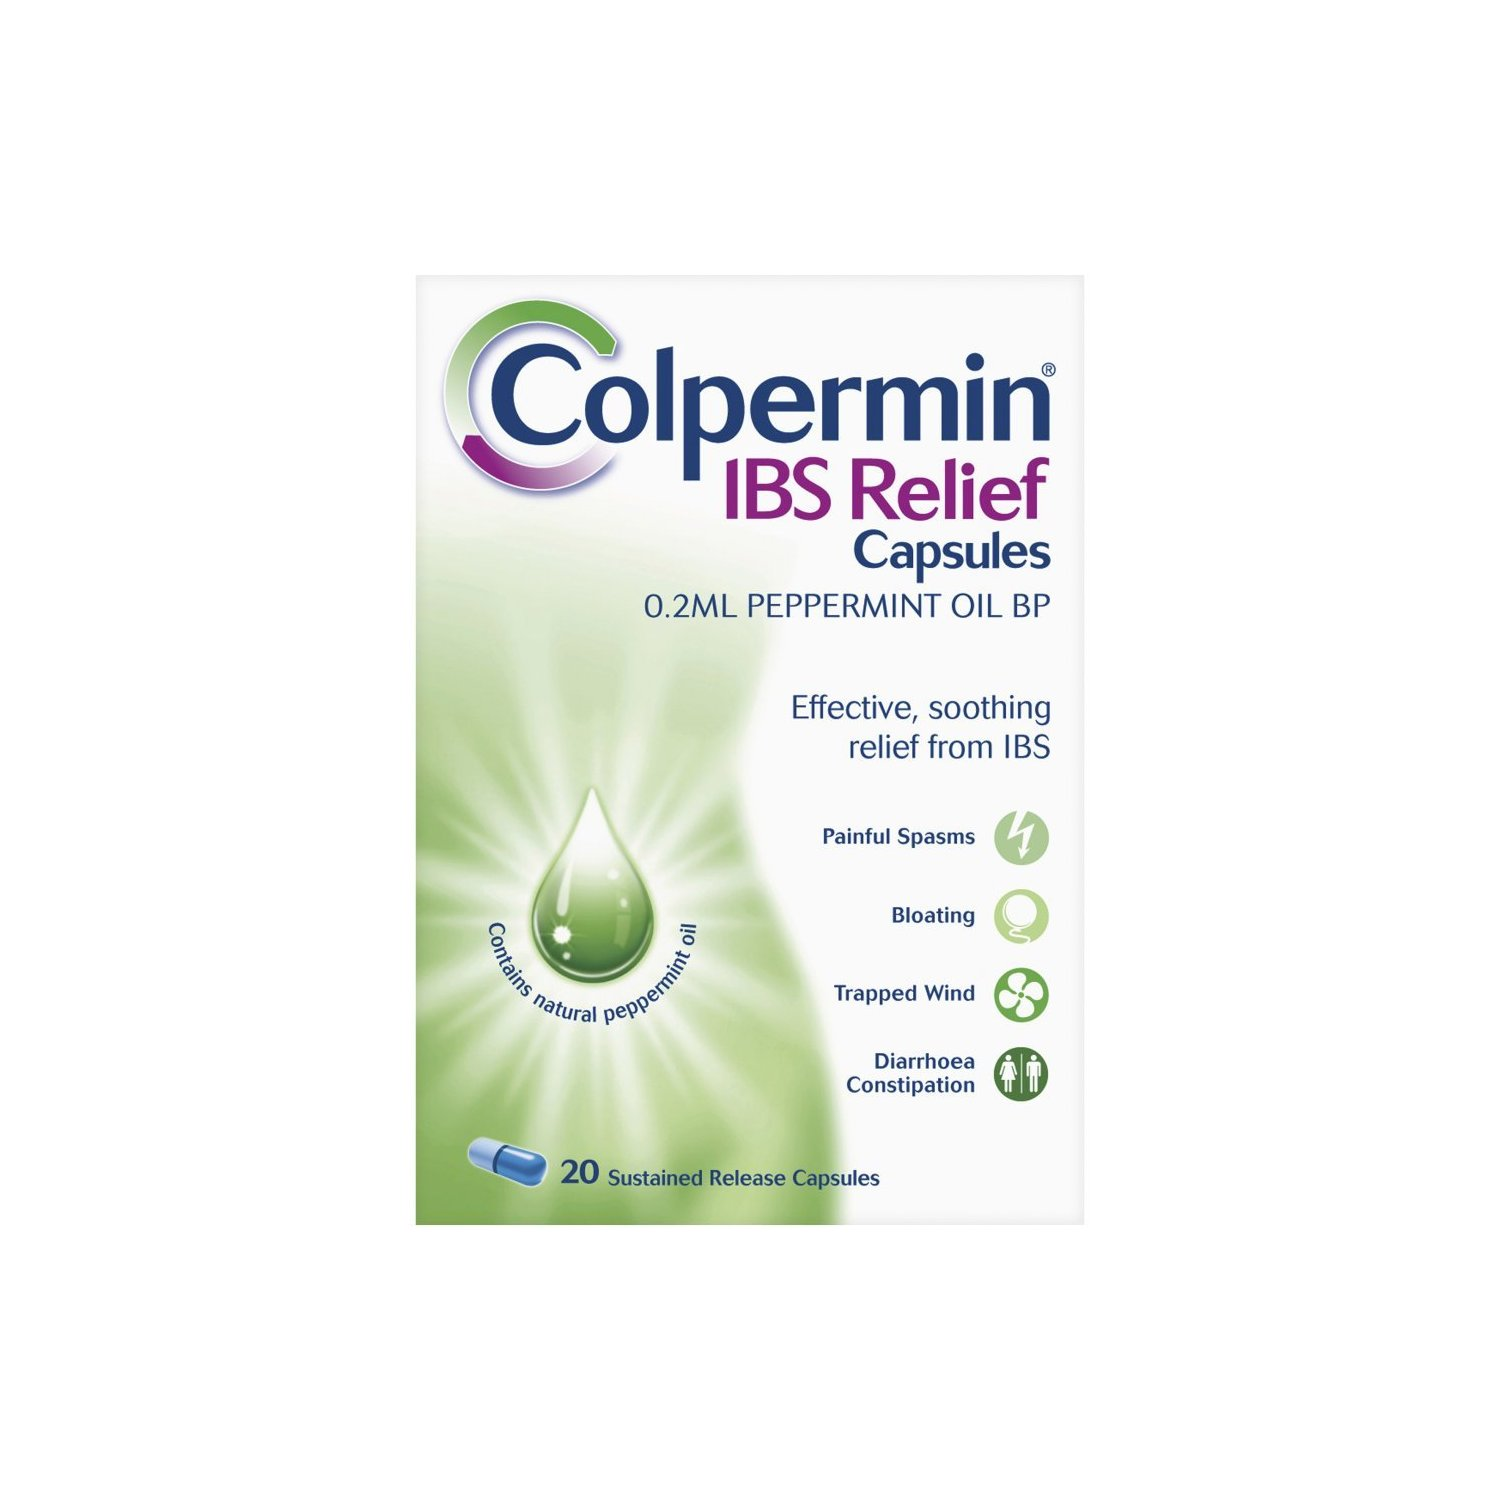 Colpermin IBS Relief capsules - 20